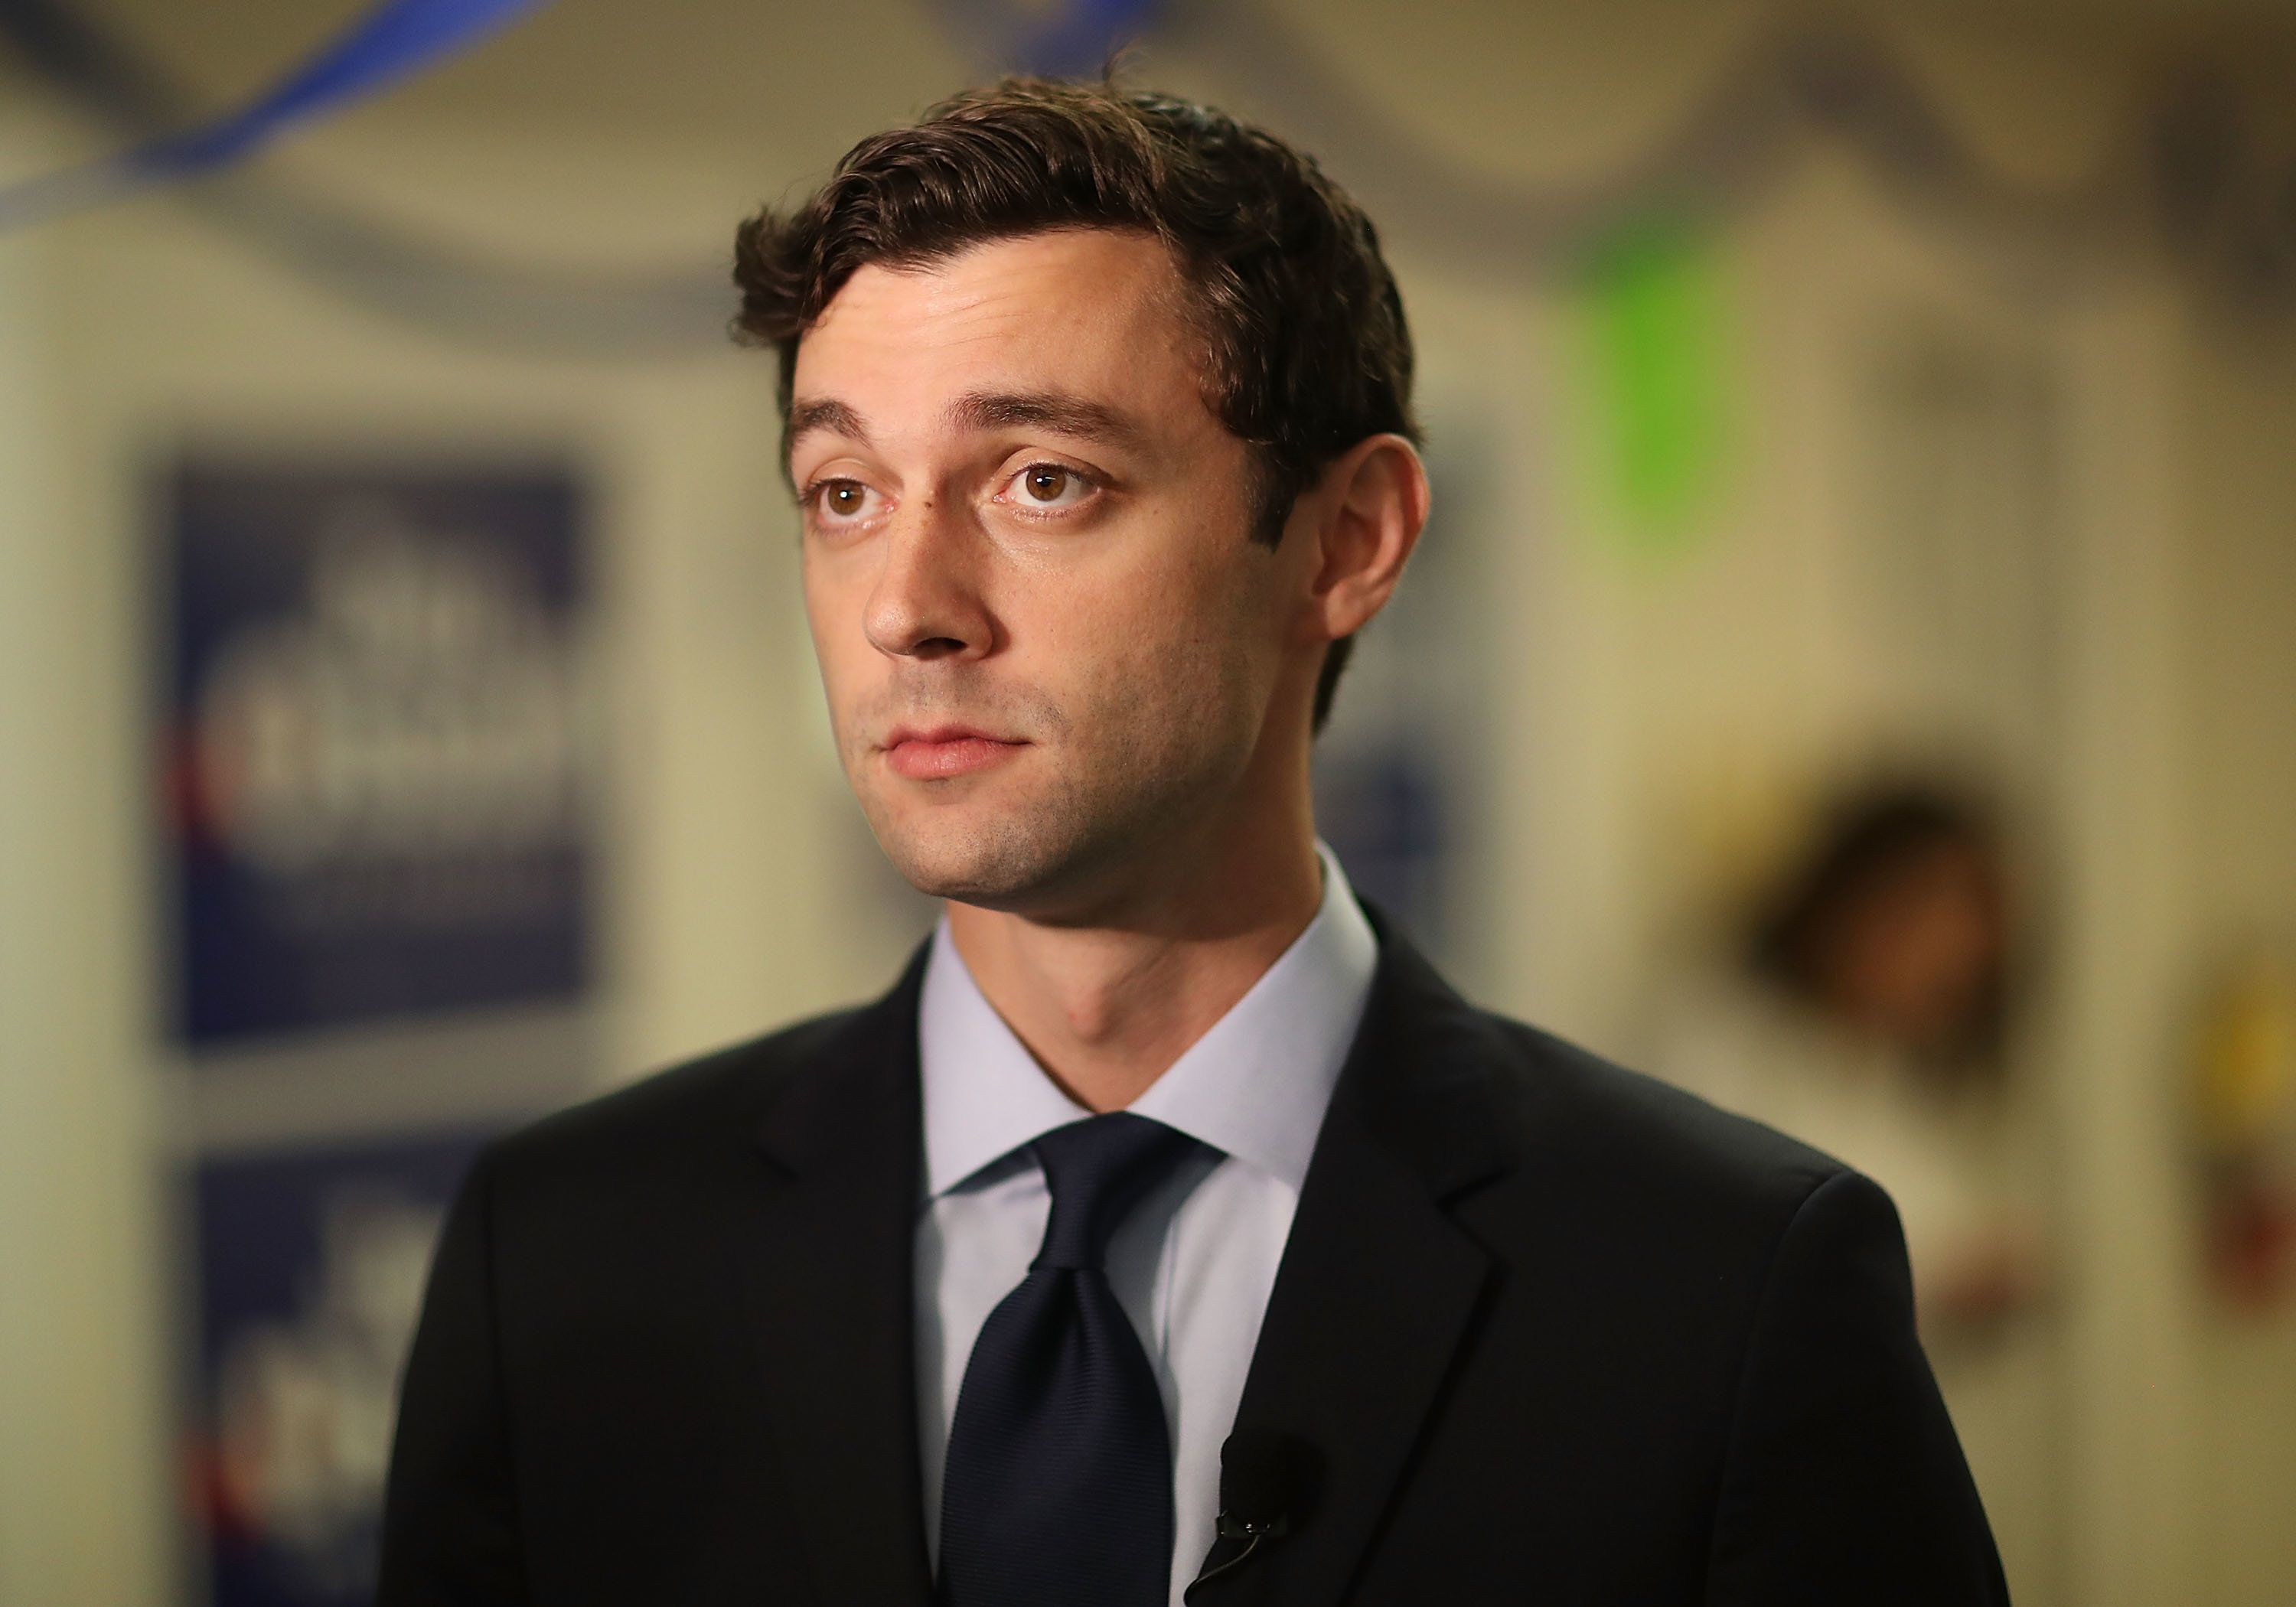 Democrat Jon Ossoff lost to Republican Karen Handel on Tuesday in a closely watched special election for Georgia's 6th Congre